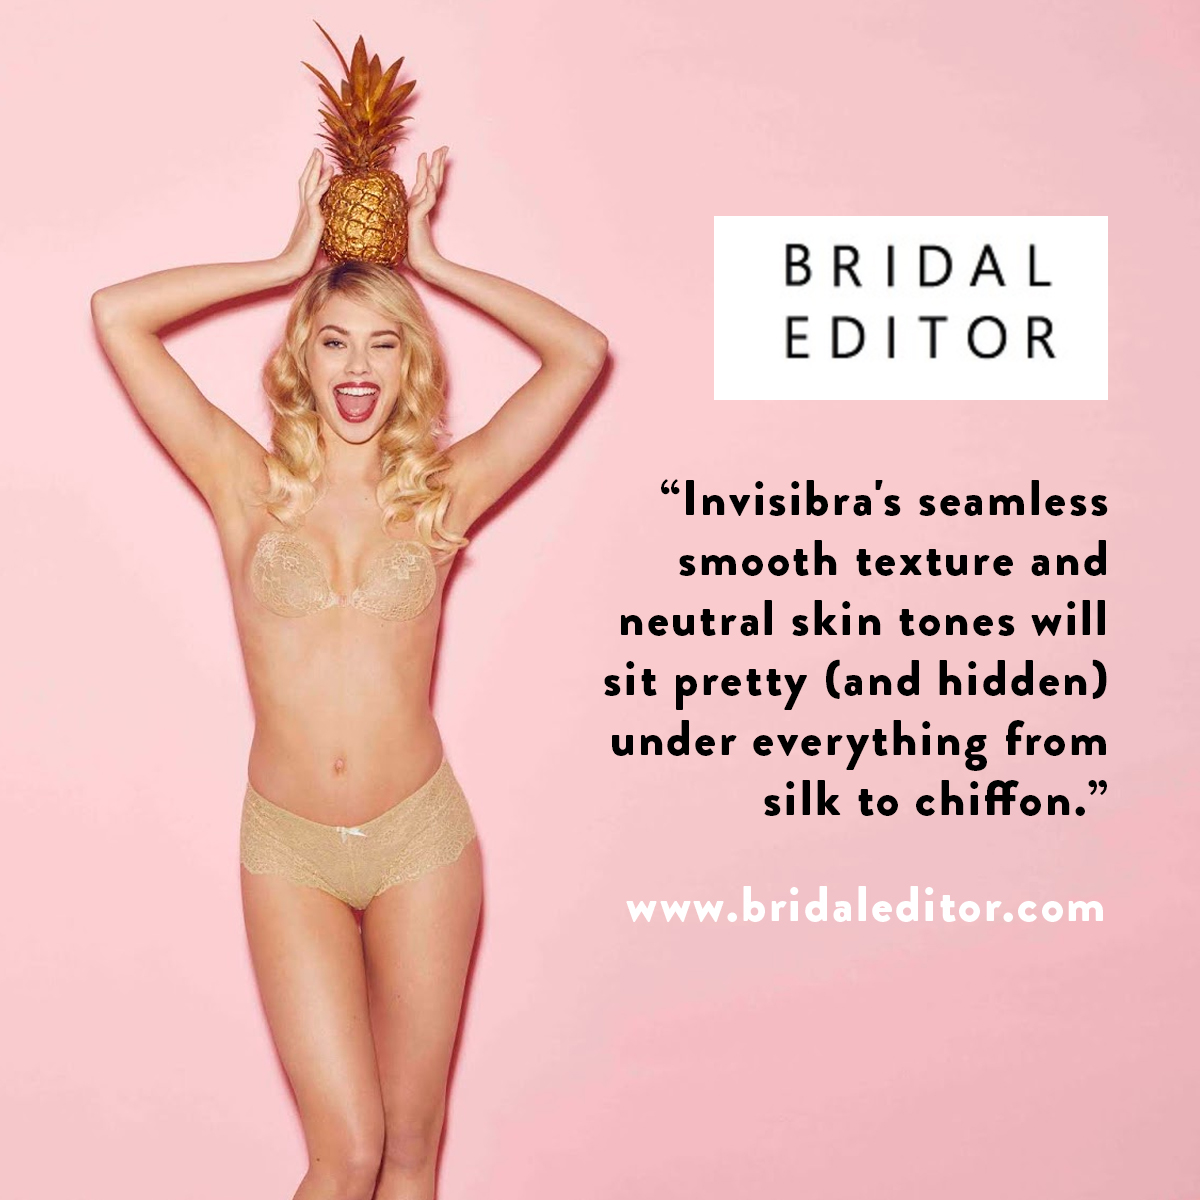 As seen on bridal editor